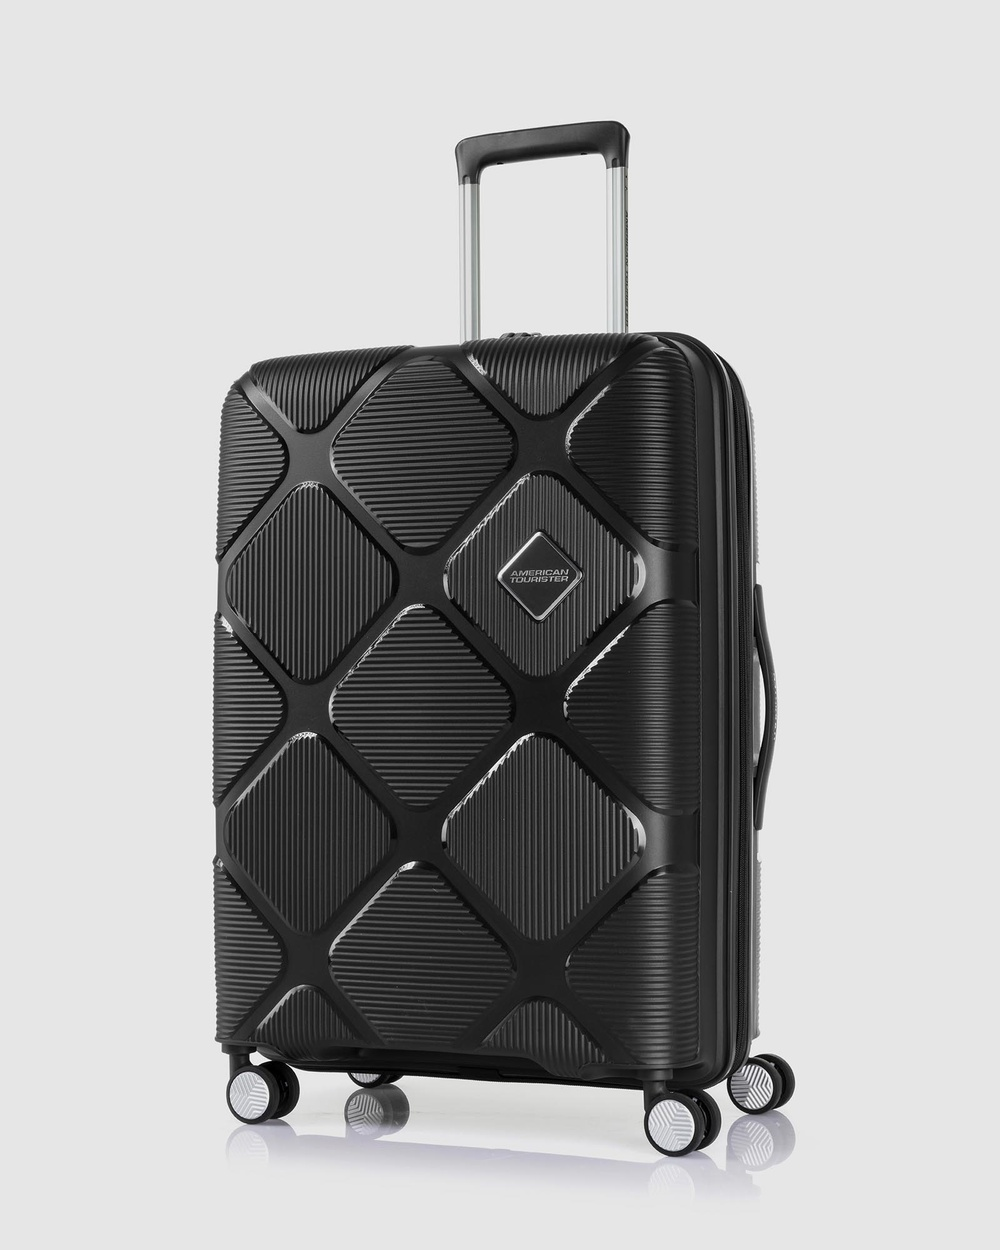 American Tourister Instagon Spinner 69 25 Travel and Luggage Jet Black 69-25